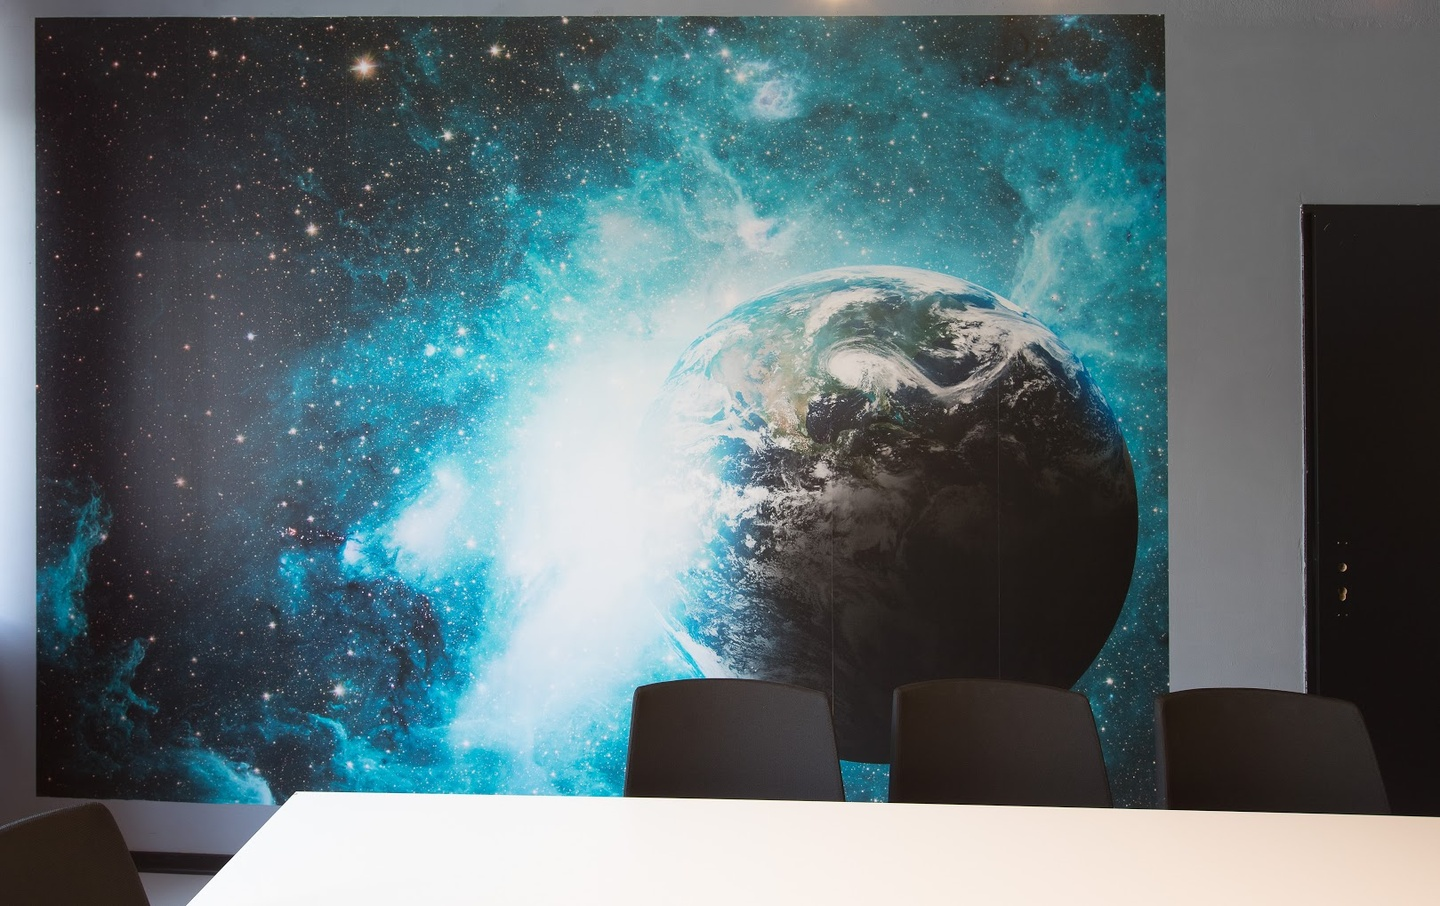 Berlin conference rooms Meeting room rent24 Mitte - Shoot for the Moon image 3